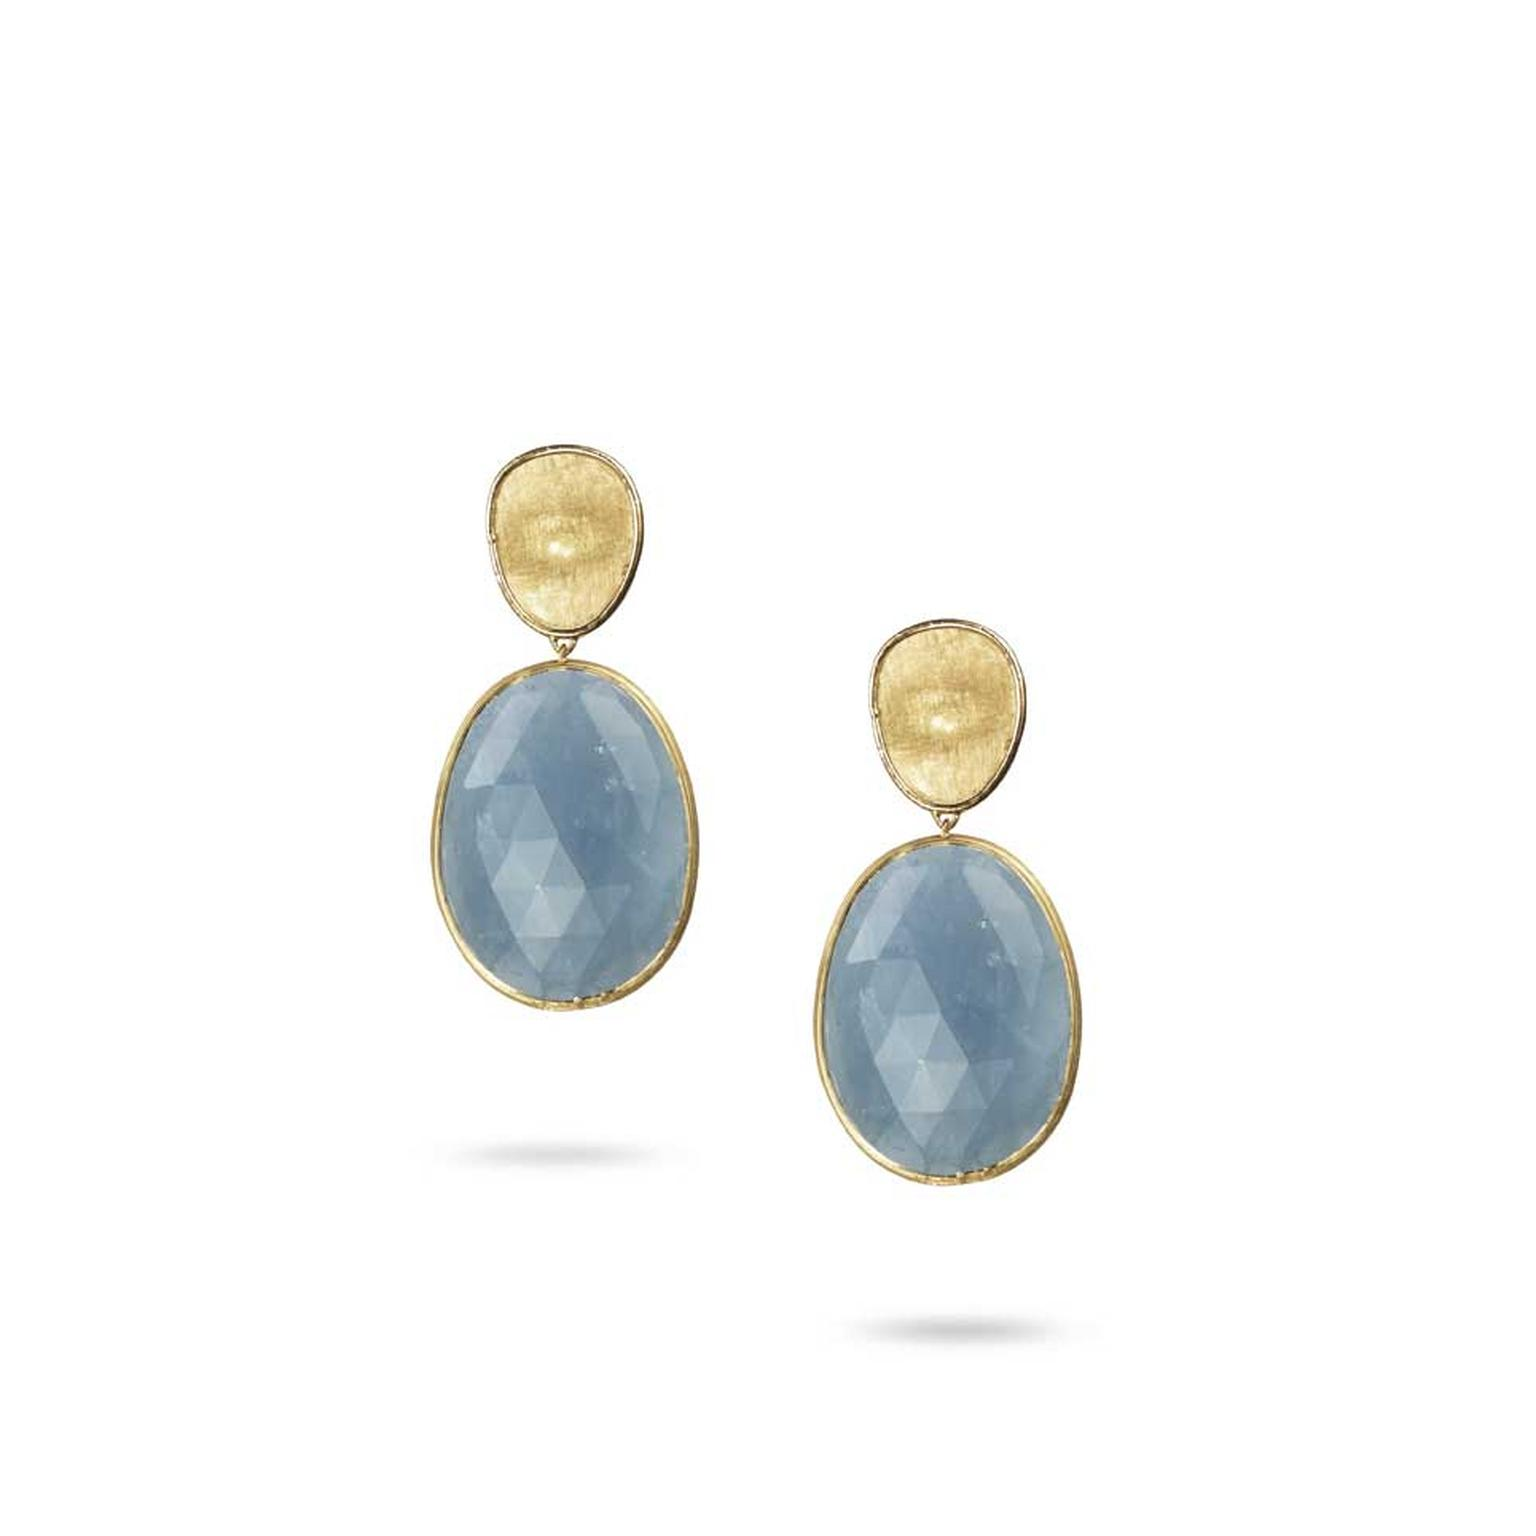 Rubover settings Marco Bicego earrings